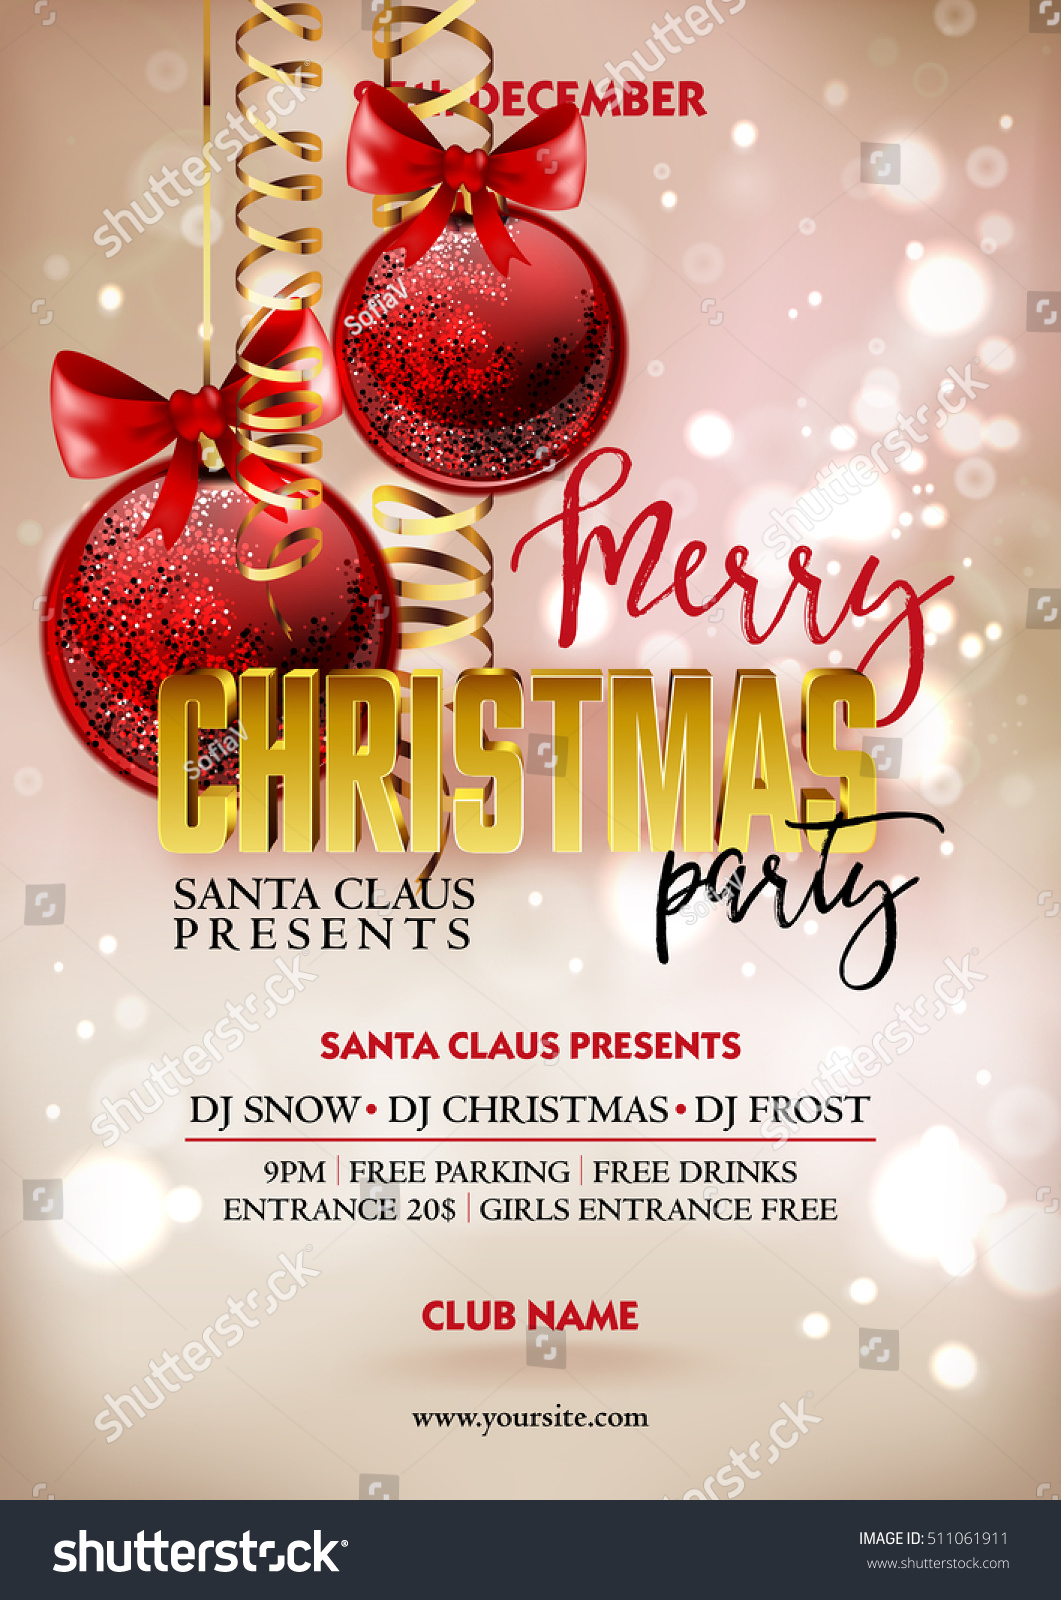 Merry Christmas Party Poster Design Template Stock Vector 511061911